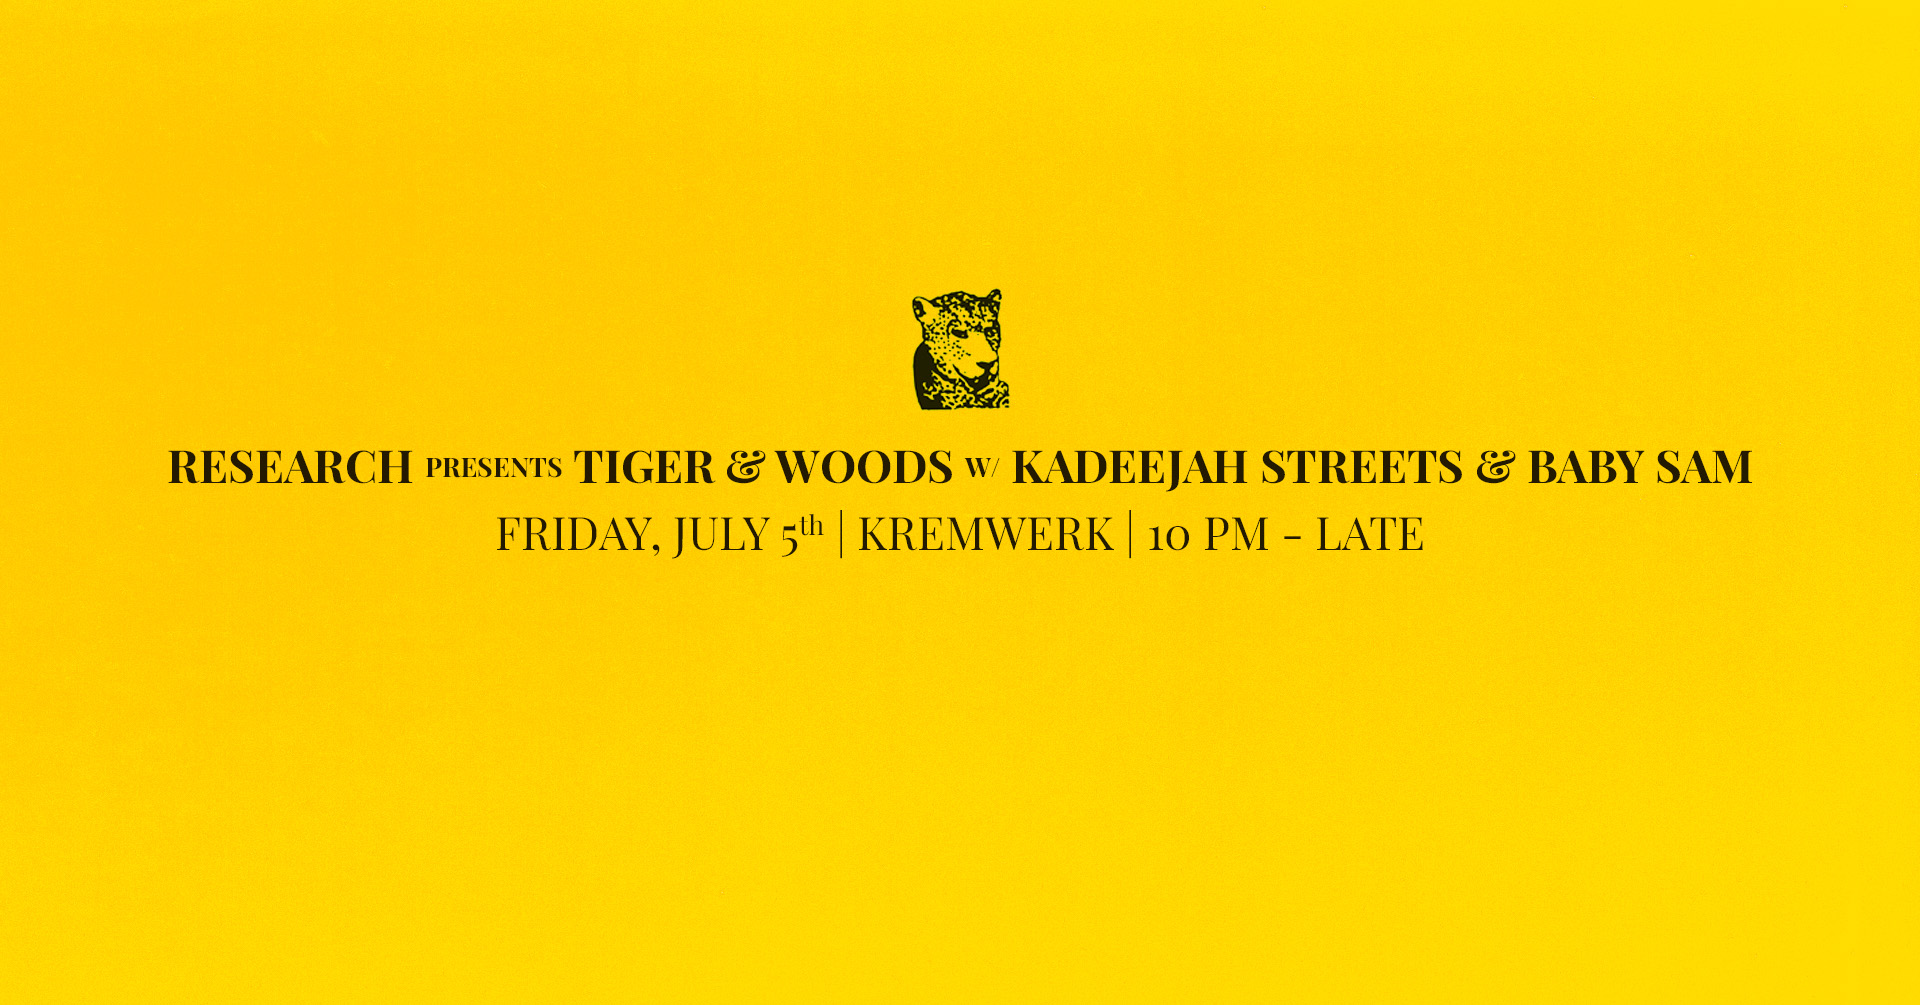 ResearchTiger&Woods - CoverPhoto.jpg